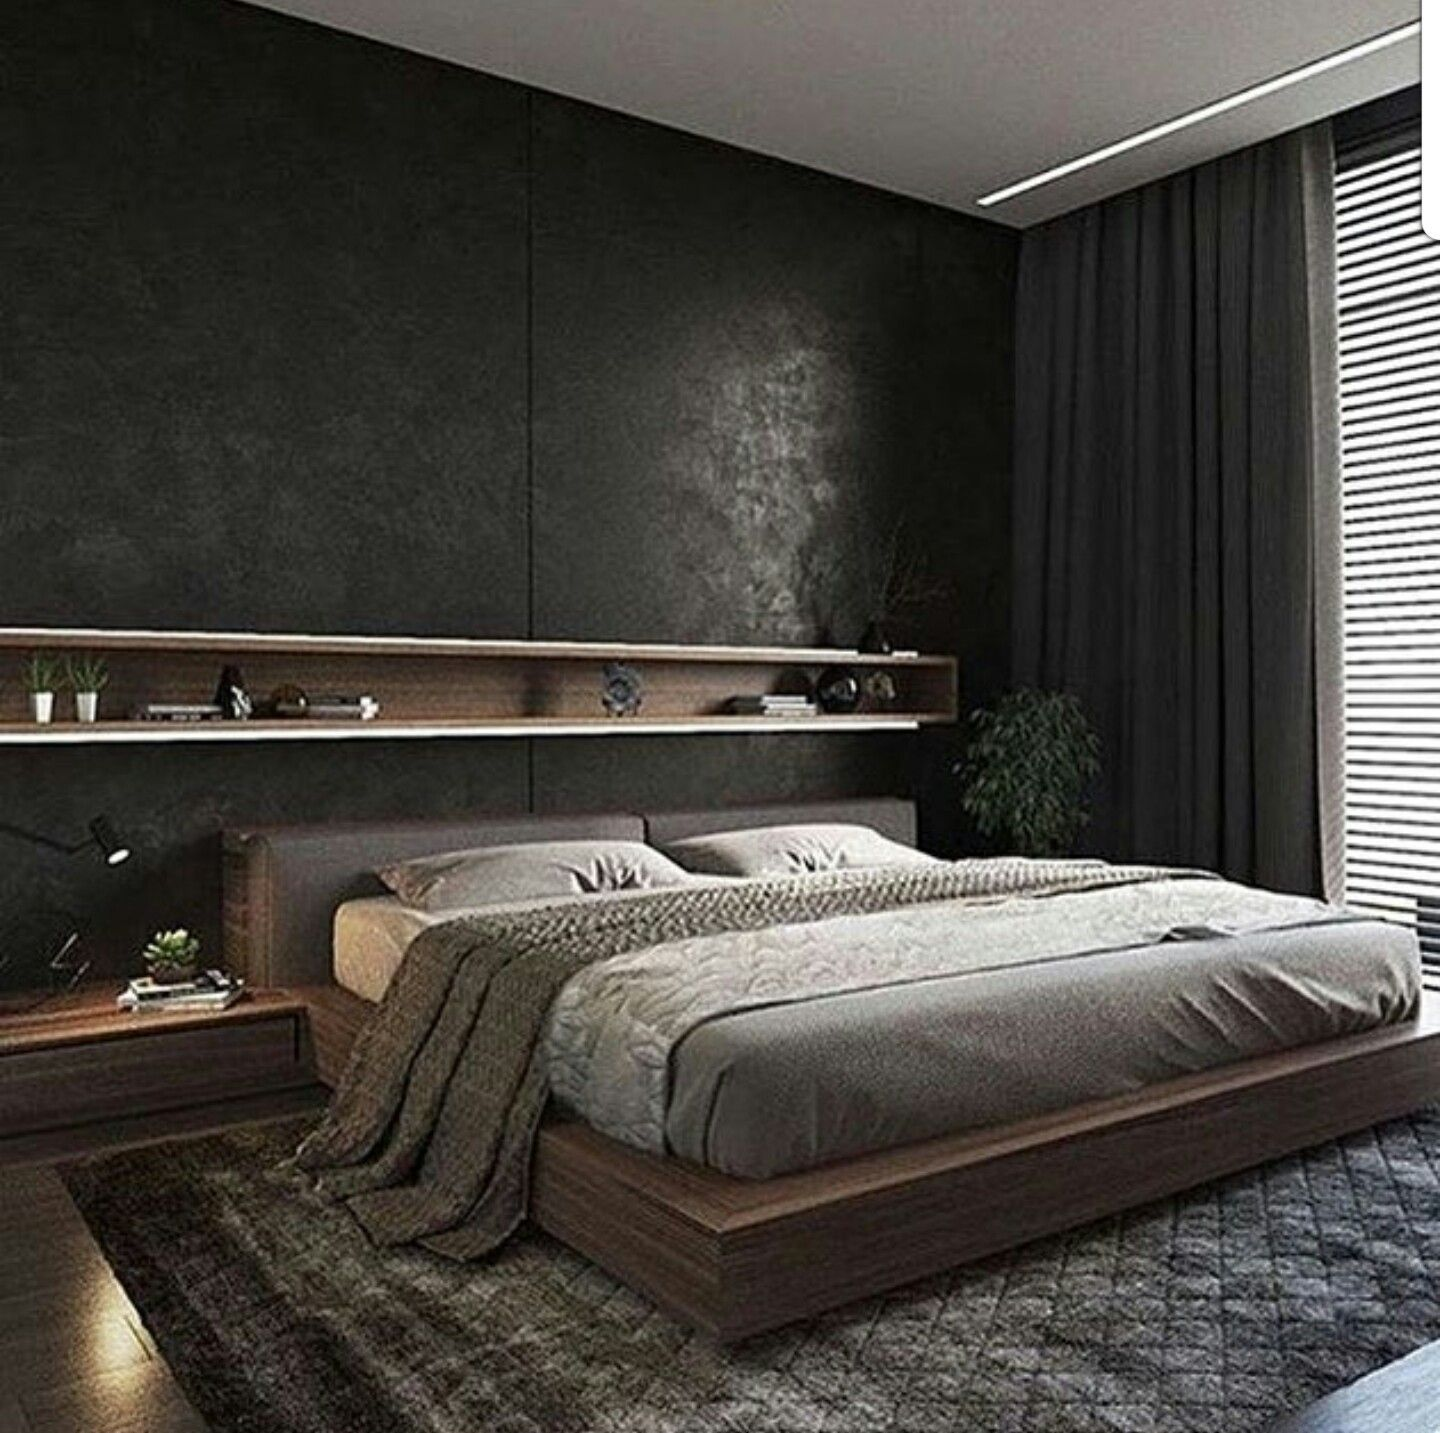 Pin by myvanityreviews on Interior design | Pinterest | Bed room ...